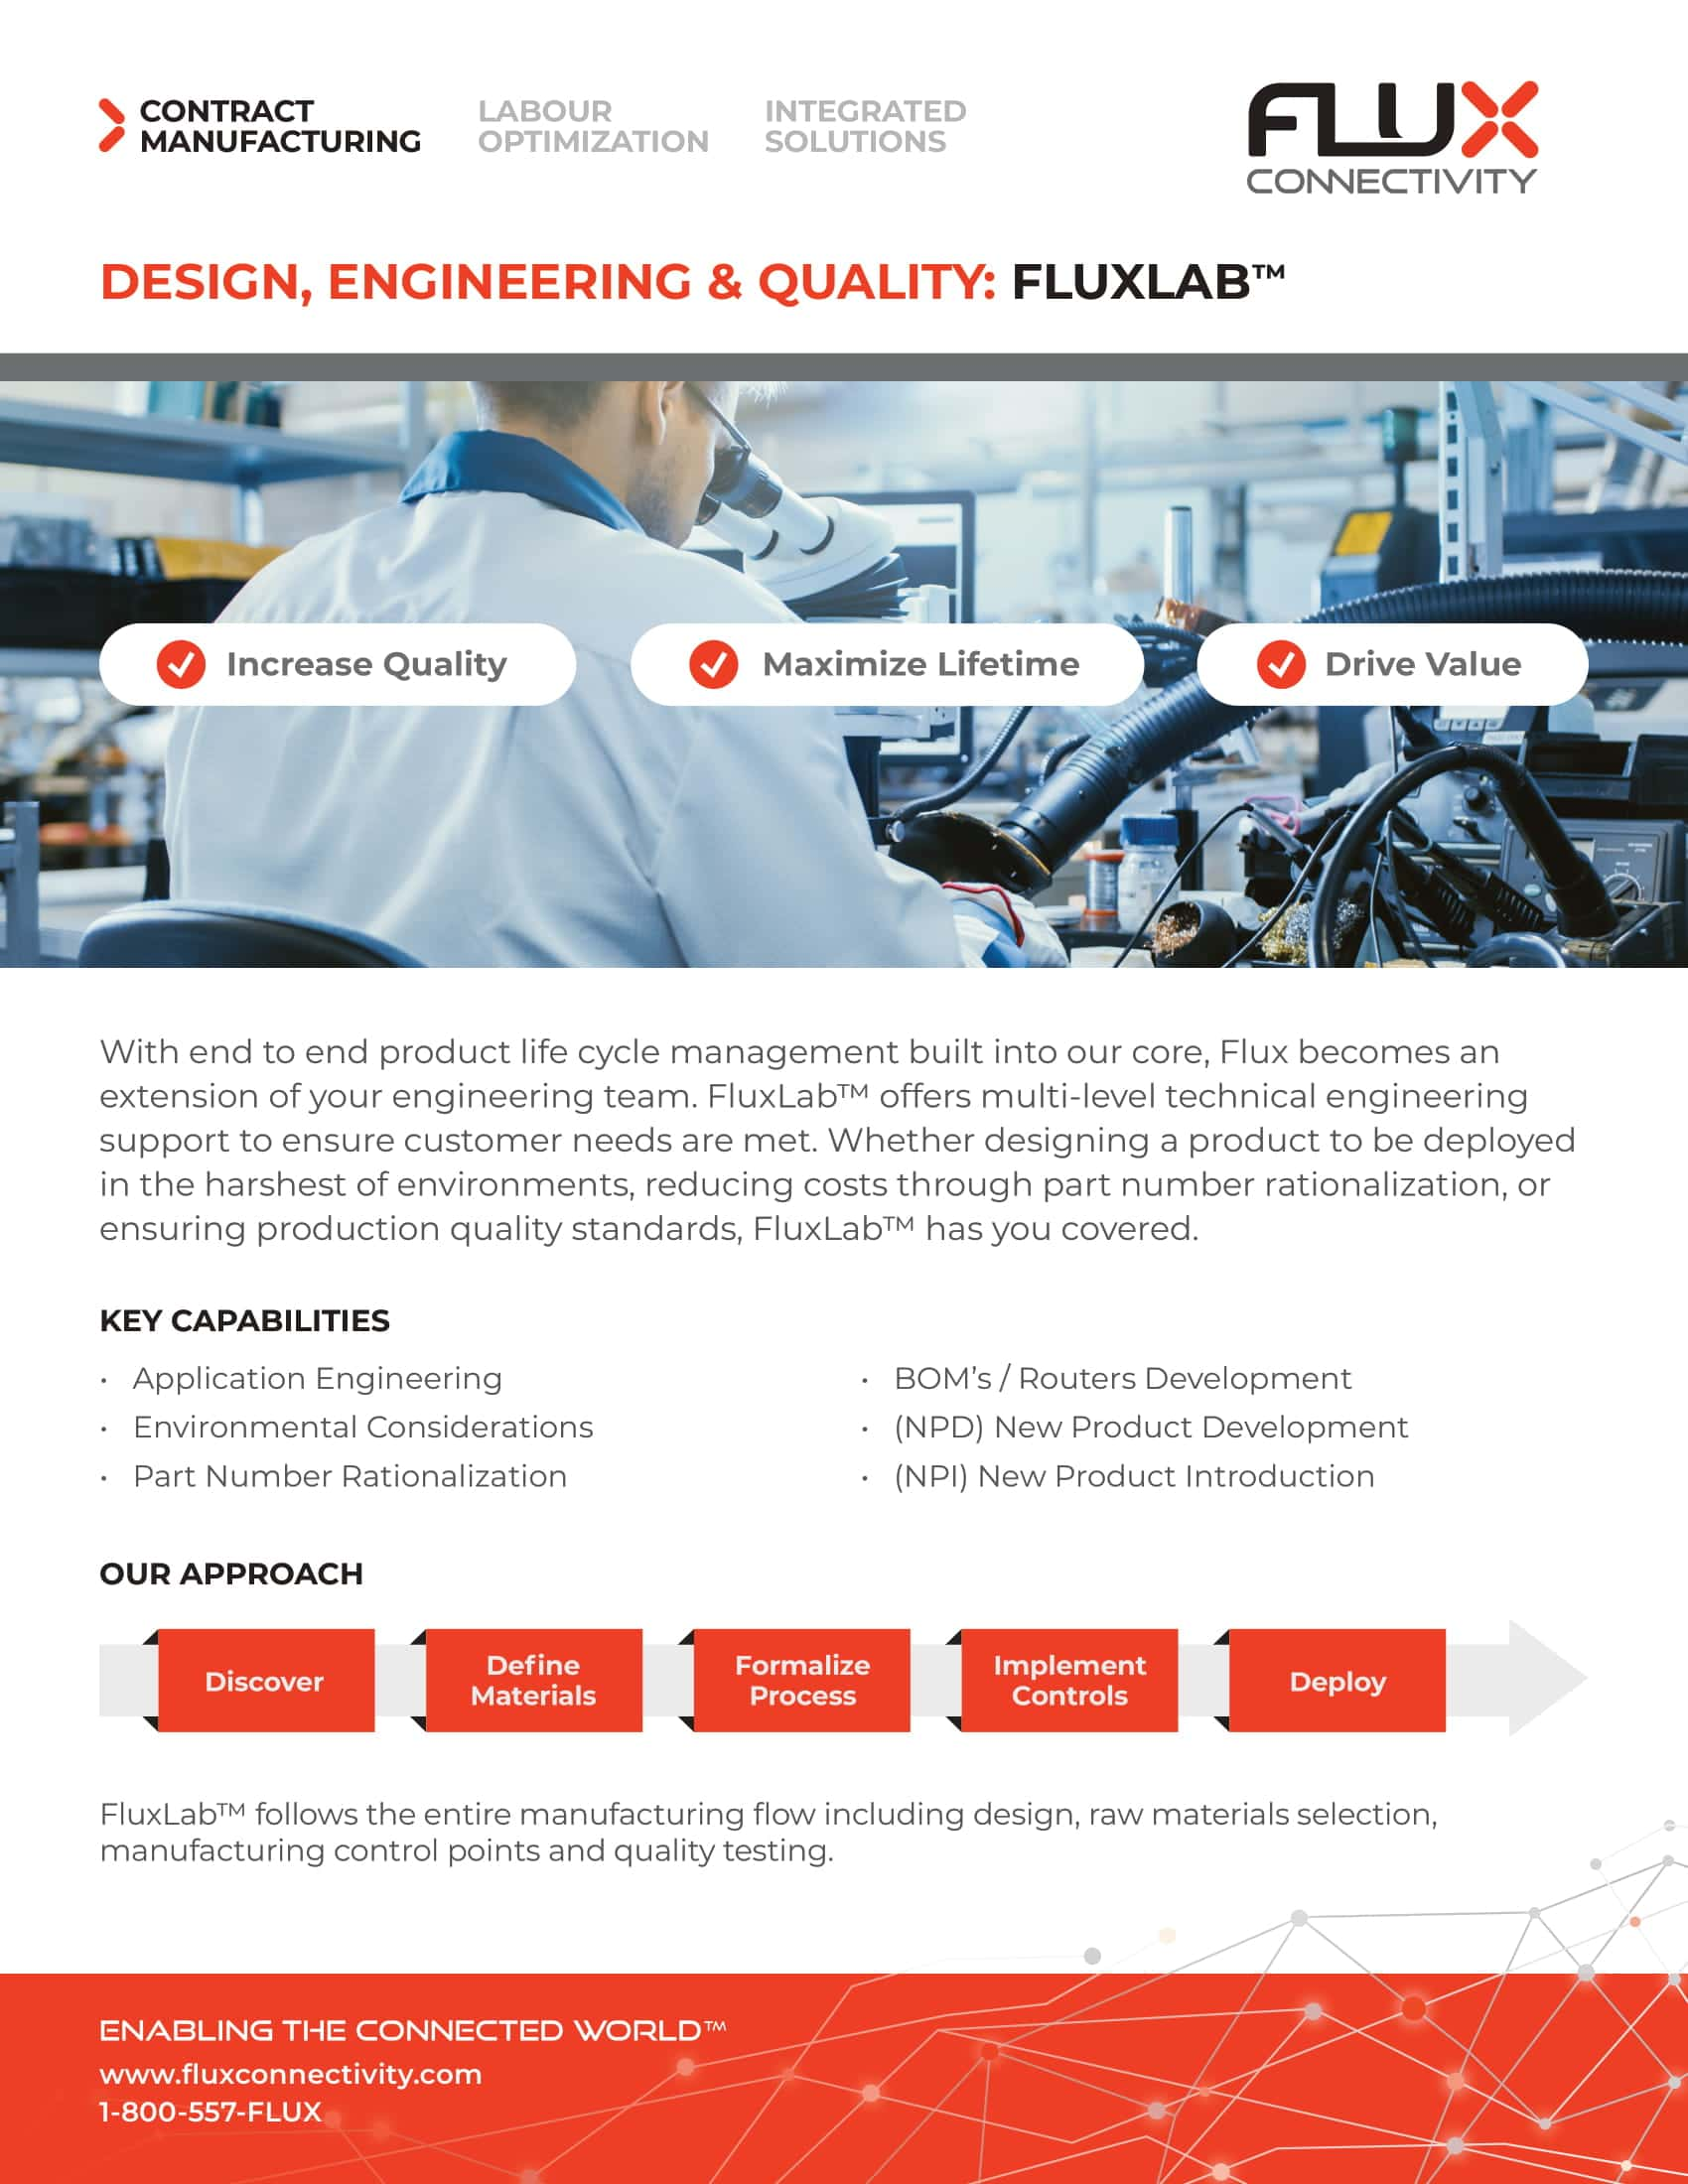 FluxLab™ – Design, Engineering & Quality